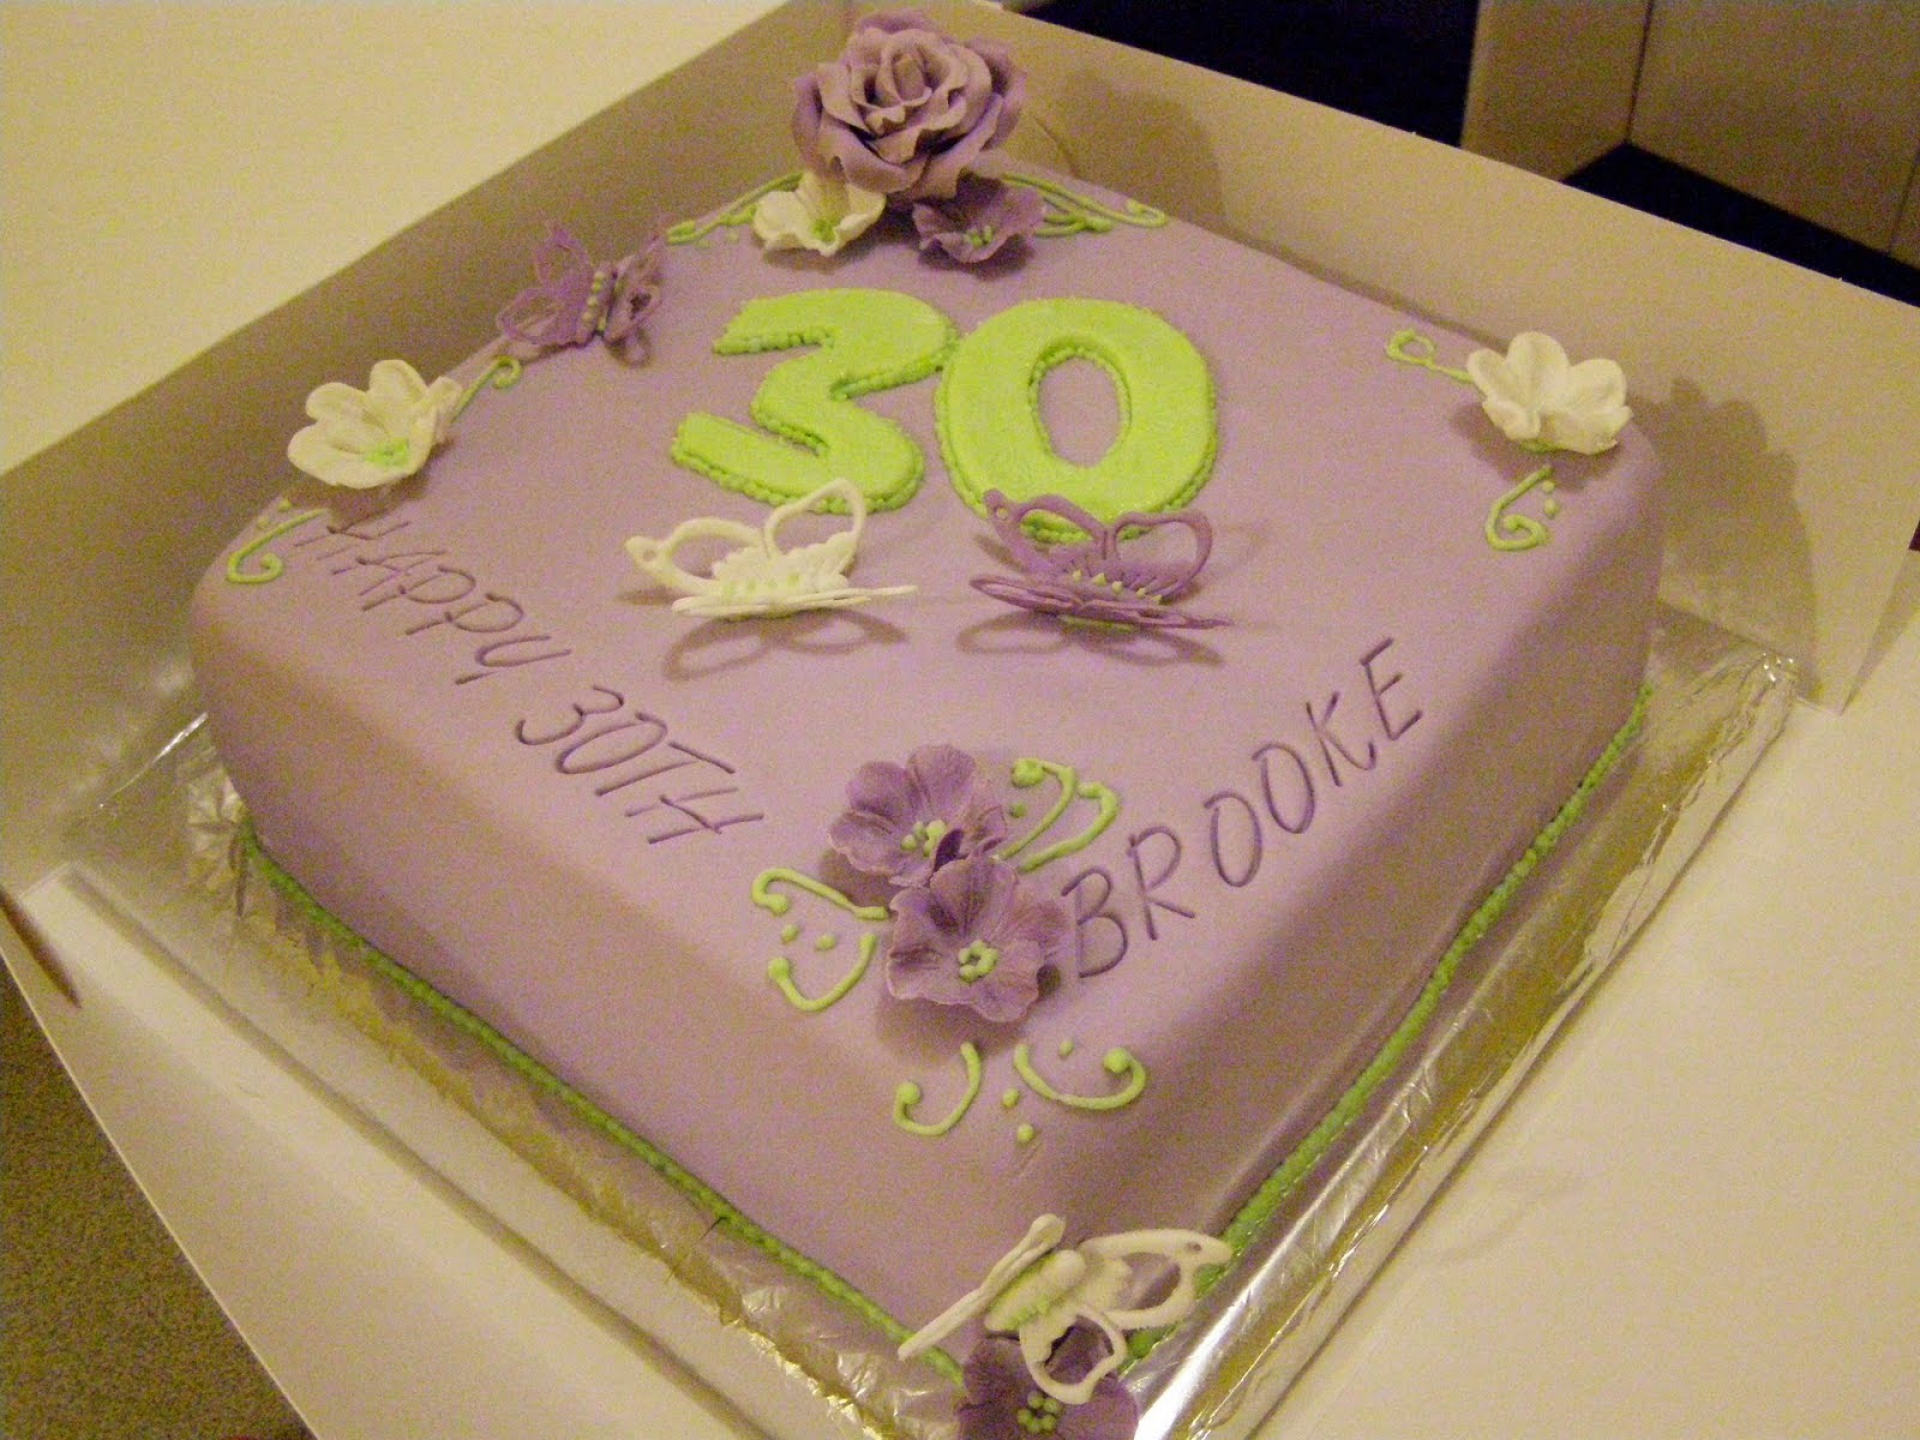 Awesome 30Th Birthday Cakes Amazing 30th Birthday Cakes For Her Cake Decorations Cupcake Ideas